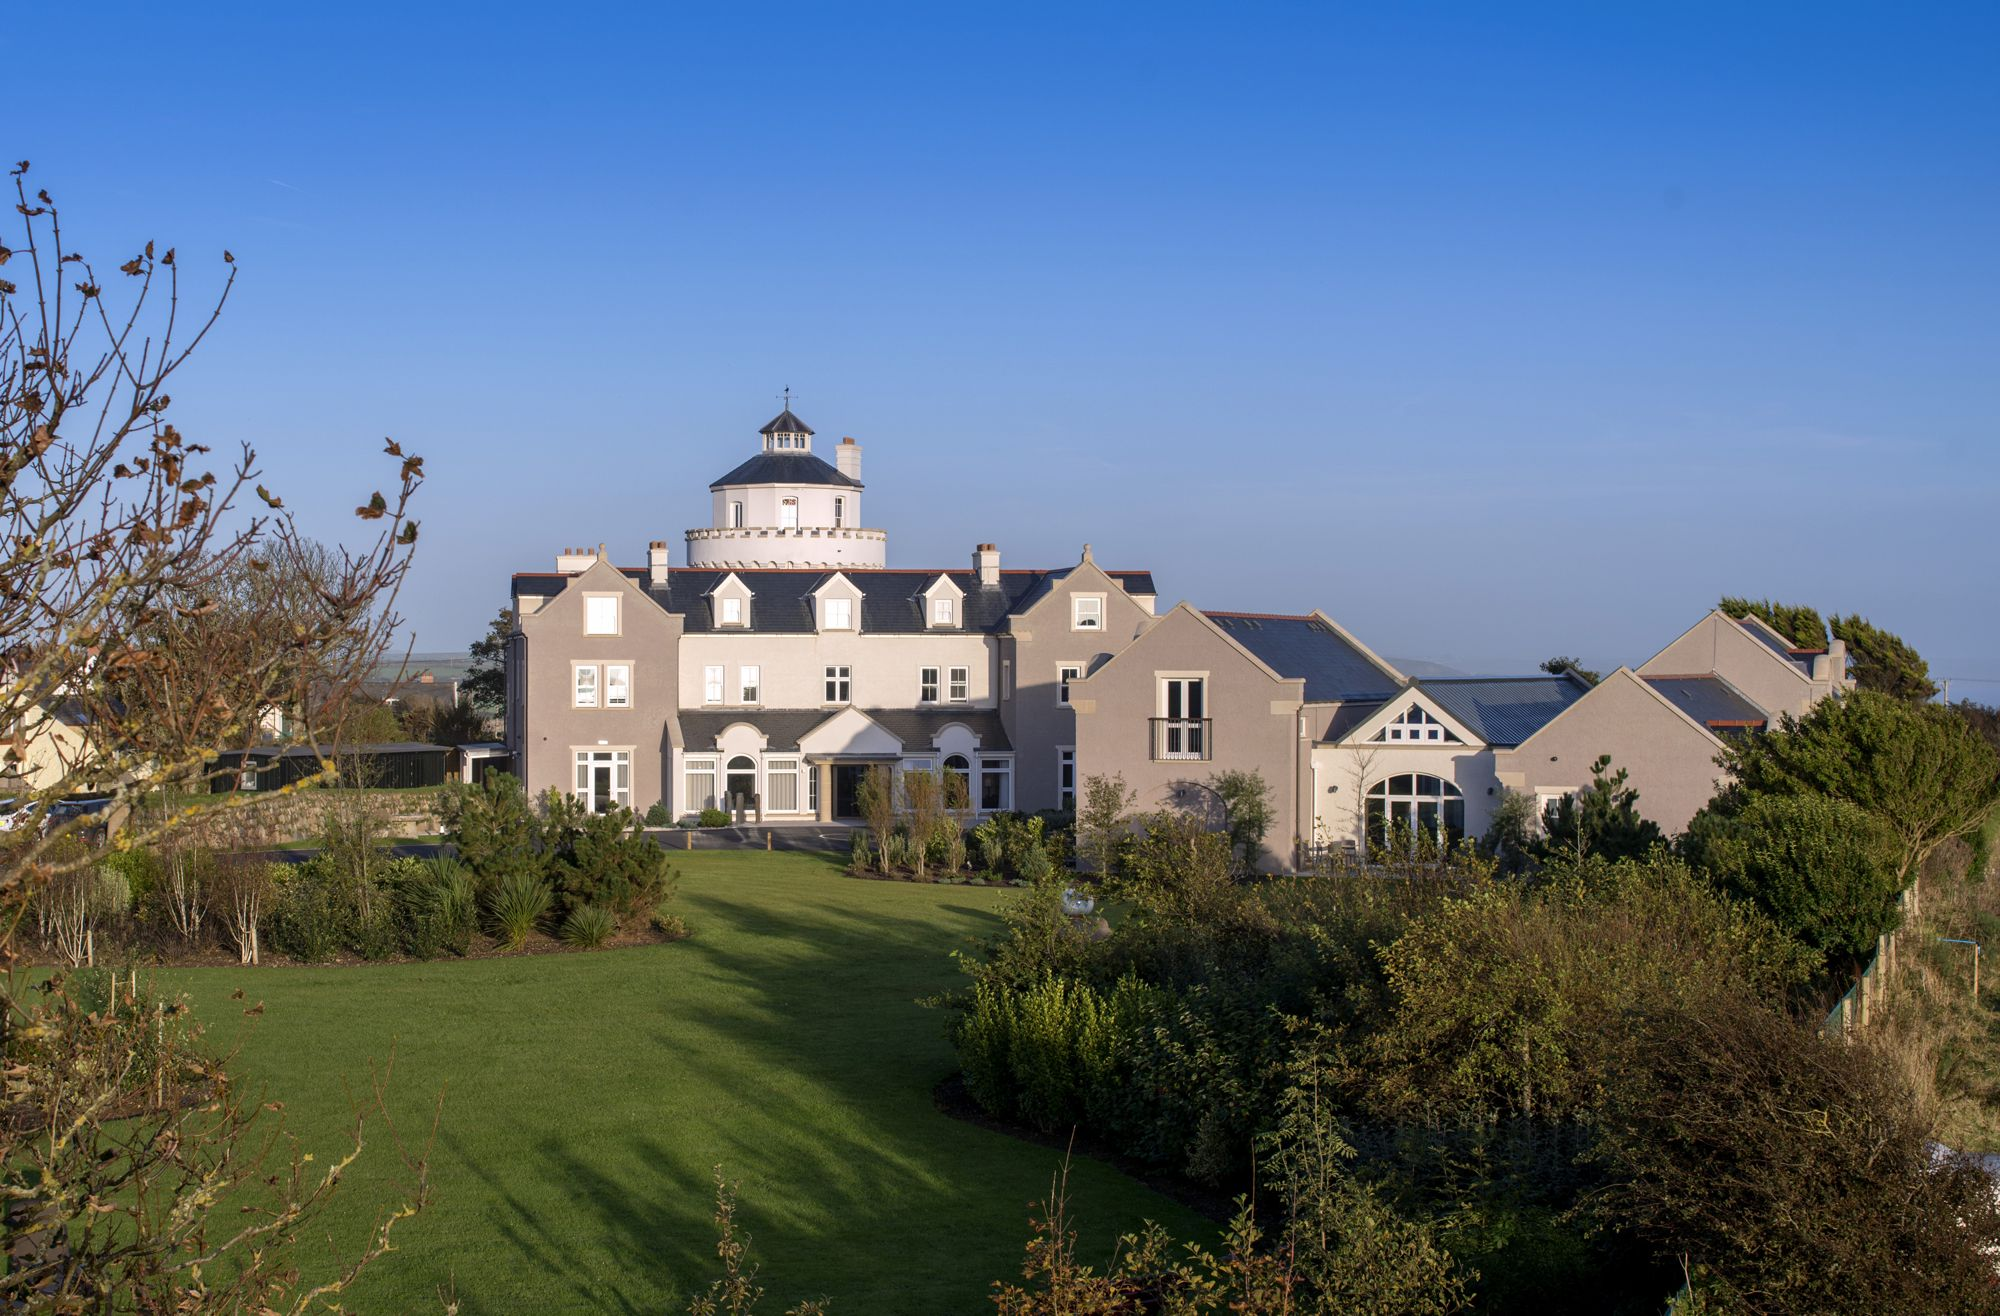 Win a 1-night Stay at Twr y Felin Hotel